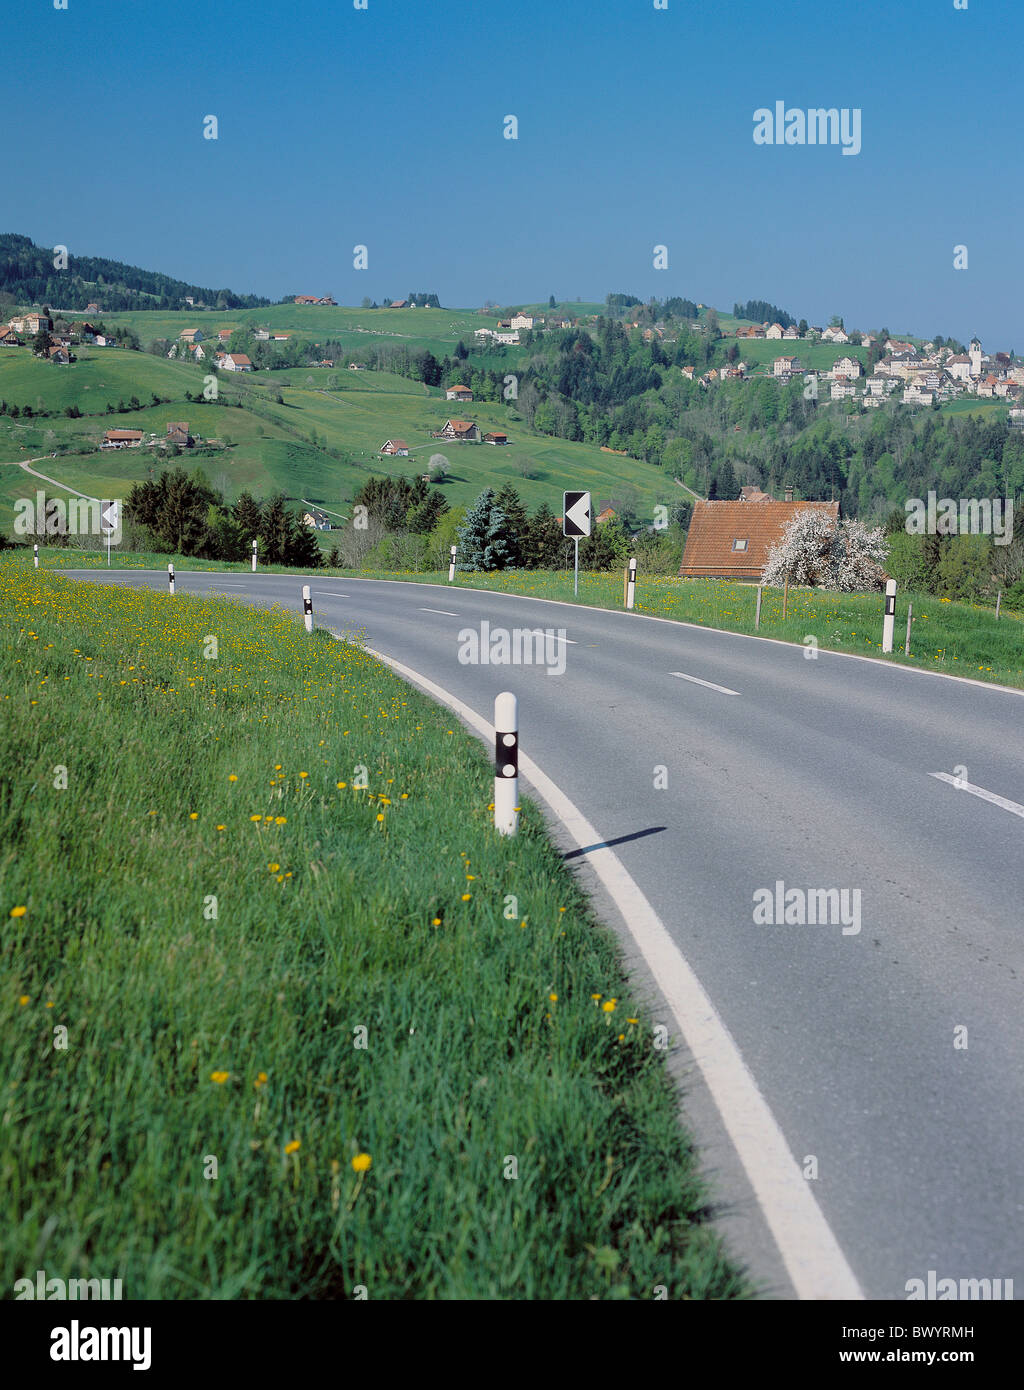 country road street Switzerland Europe Appenzell behind Deceiving Scenery - Stock Image